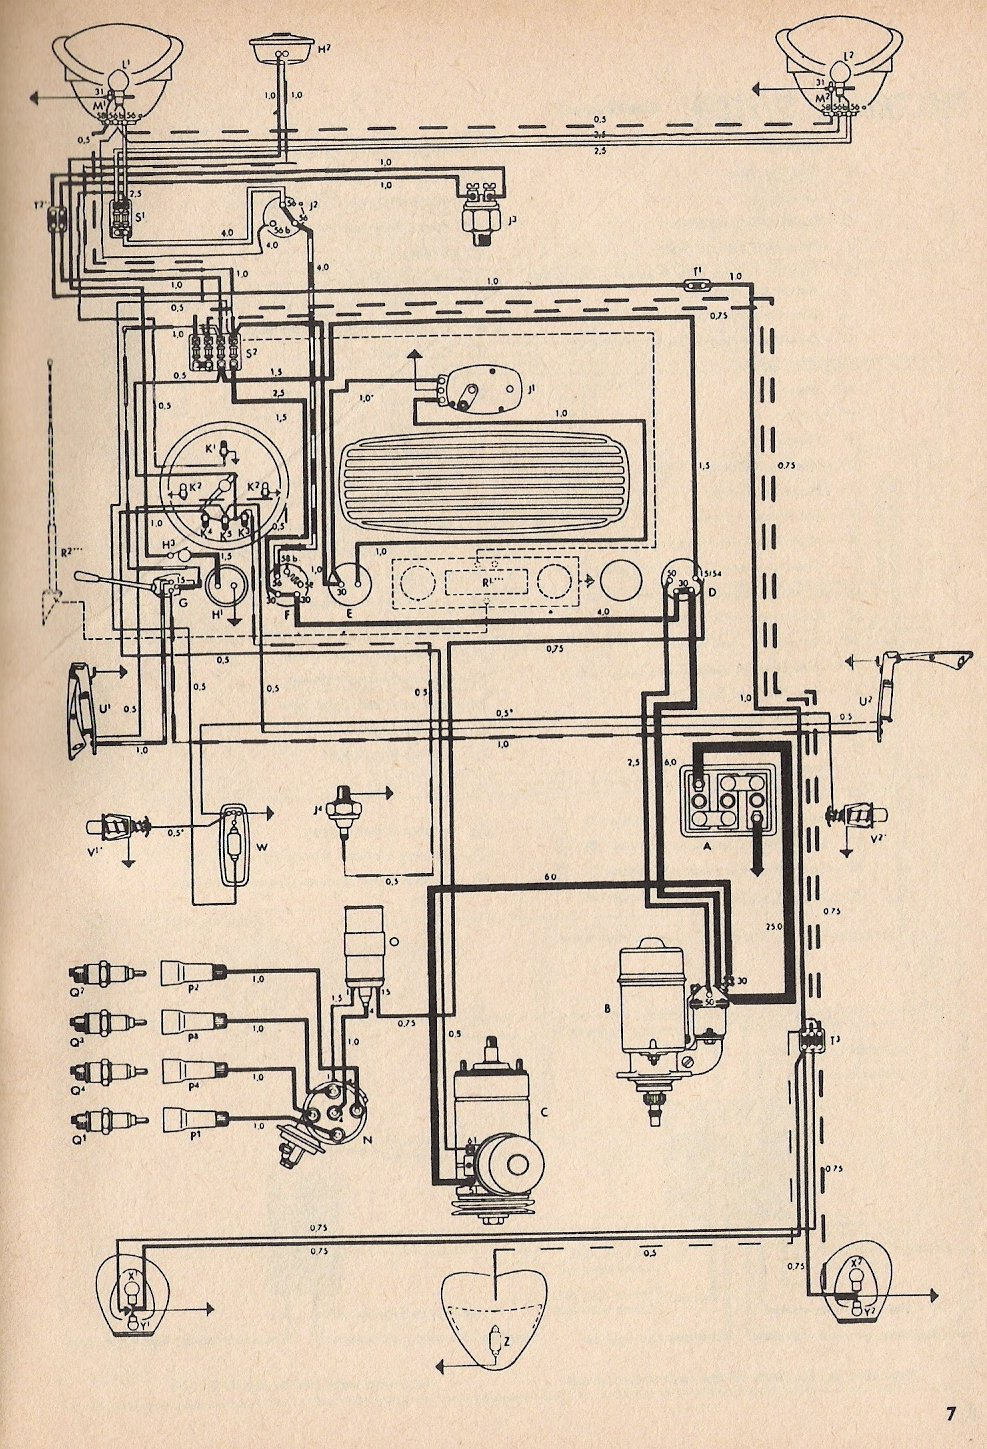 74 bug wiring schematics ford diagrams schematics wiring